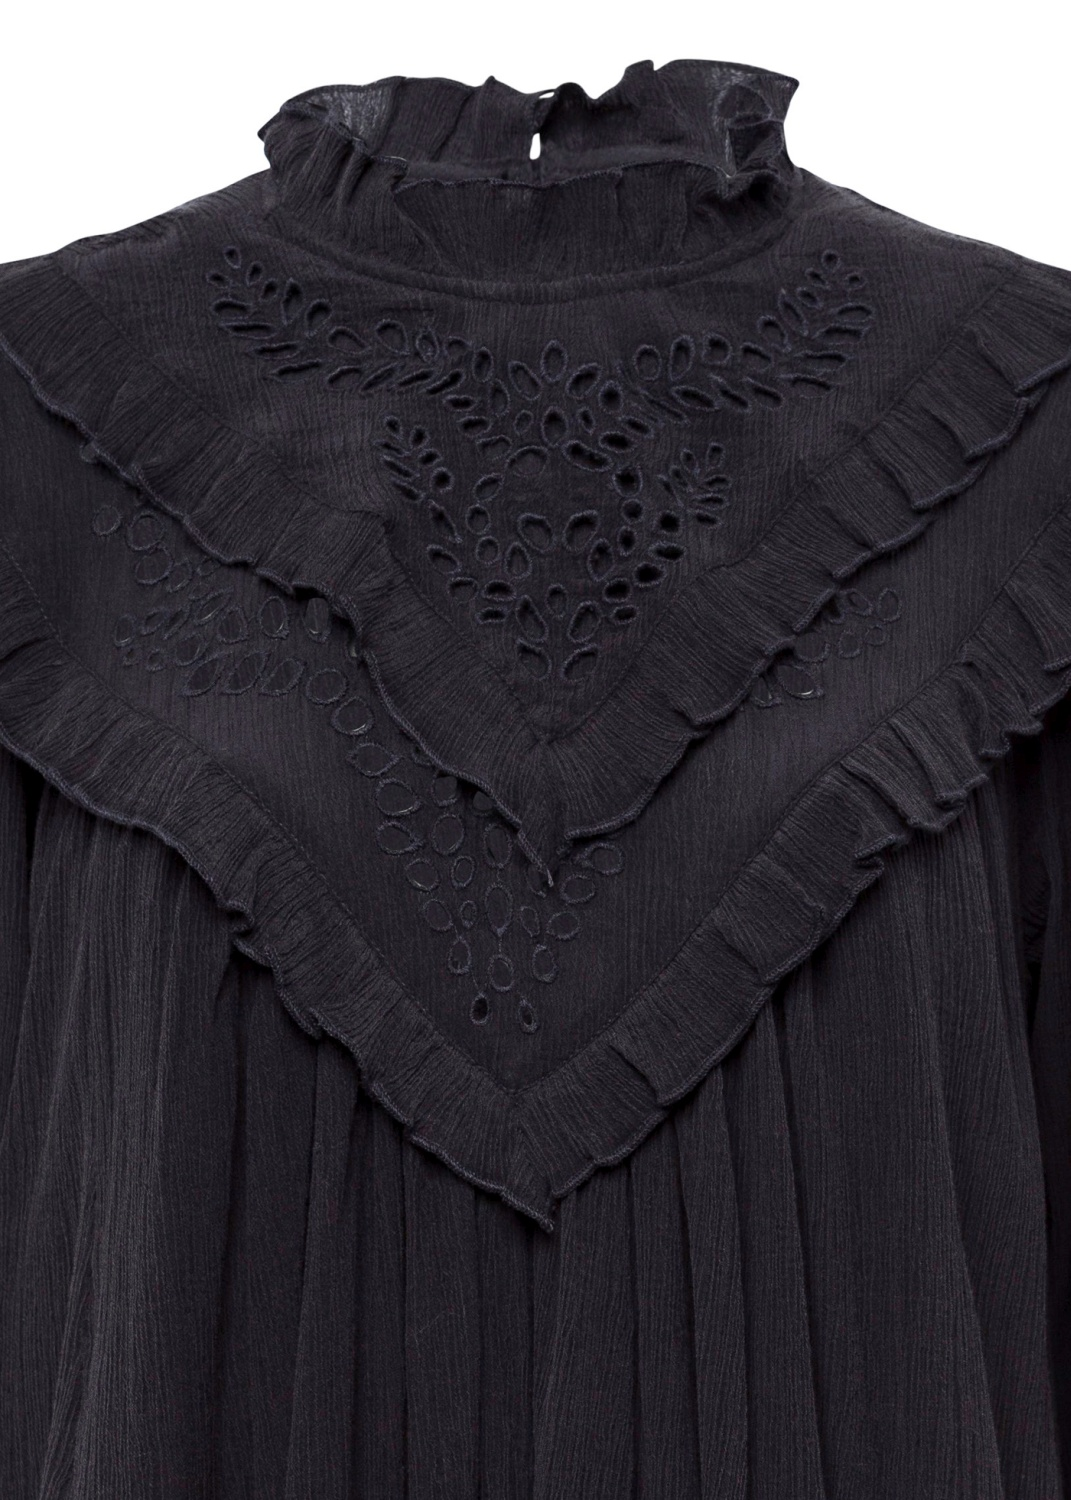 INALIO Dress image number 2